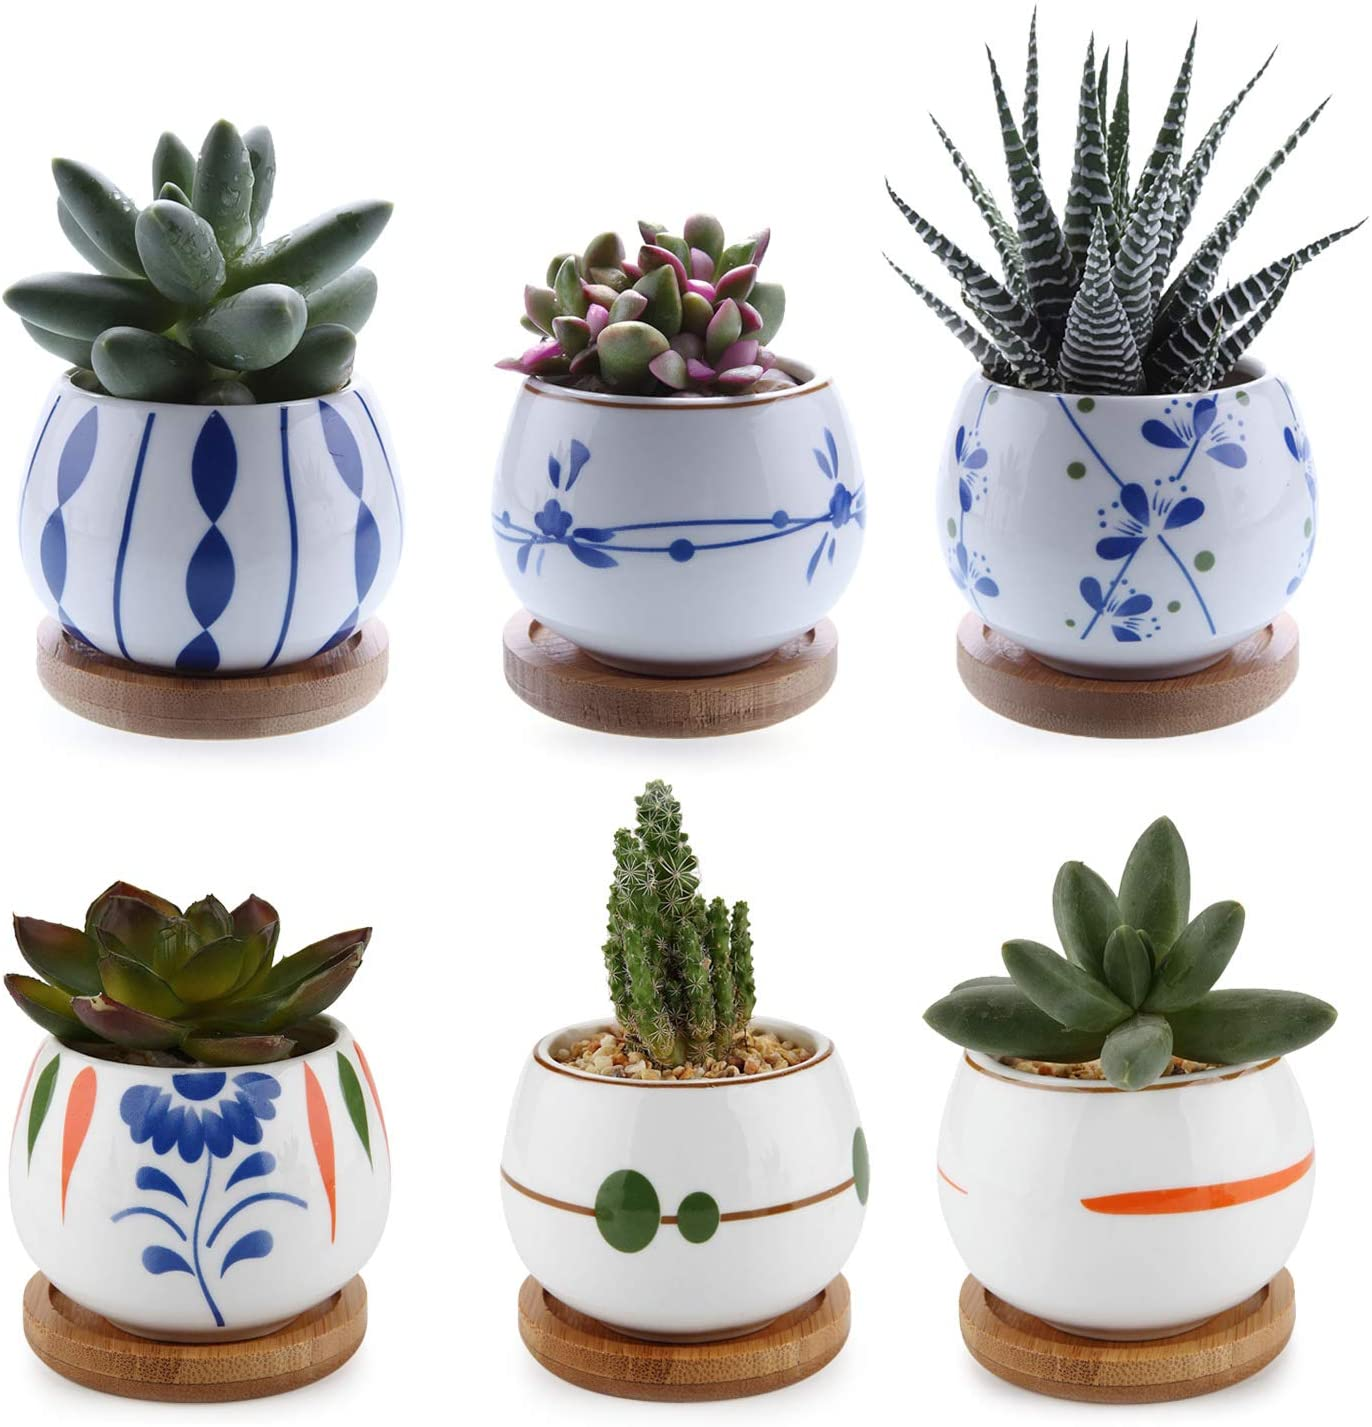 T4u 7cm Mini Succulent Pot With Bamboo Tray Set Of 6 Small Cactus Planter Plant Pot Window Box For Home Office Table Desktop Decoration For Family Birthday Wedding Christmas Amazon Co Uk Kitchen